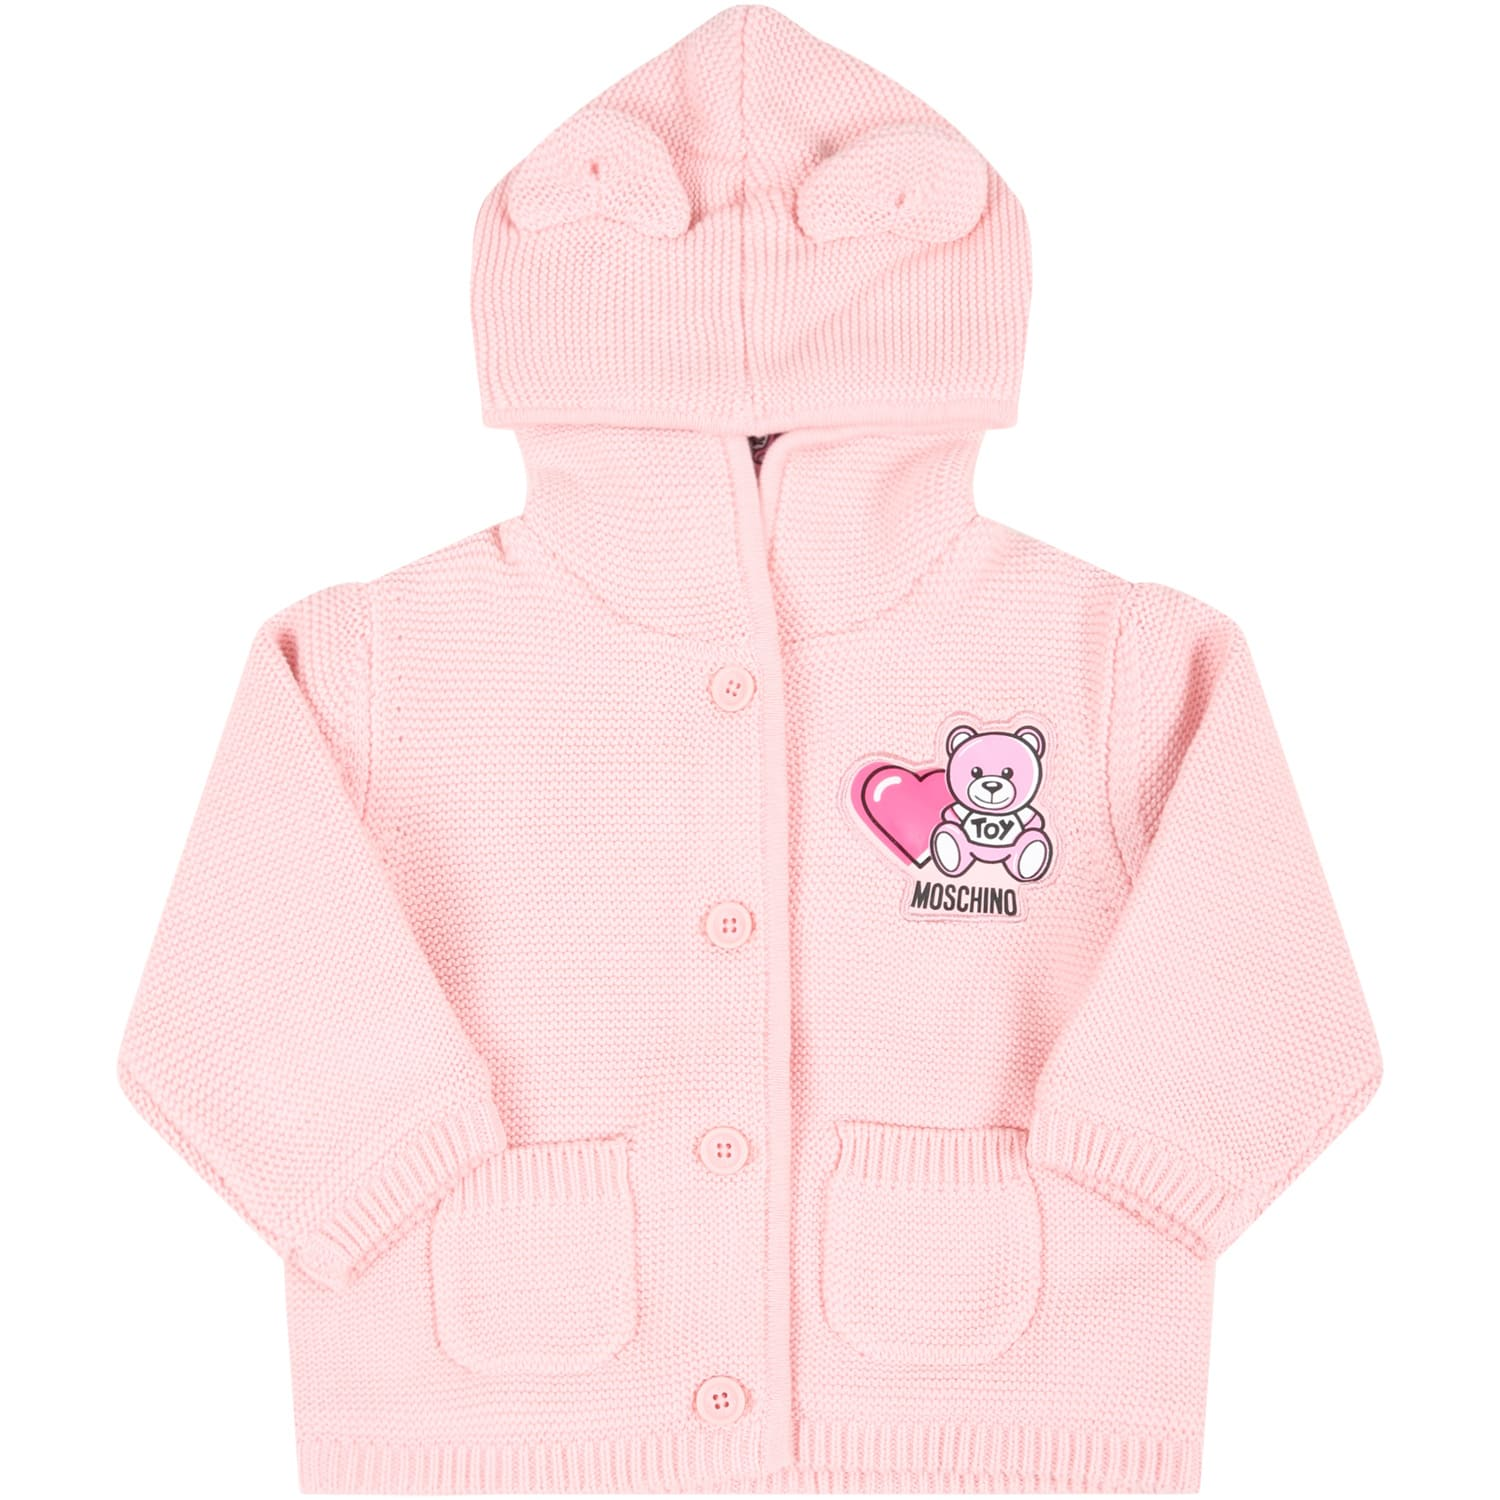 Moschino PINK CARDIGAN FOR BABYGIRL WITH TEDDY BEAR